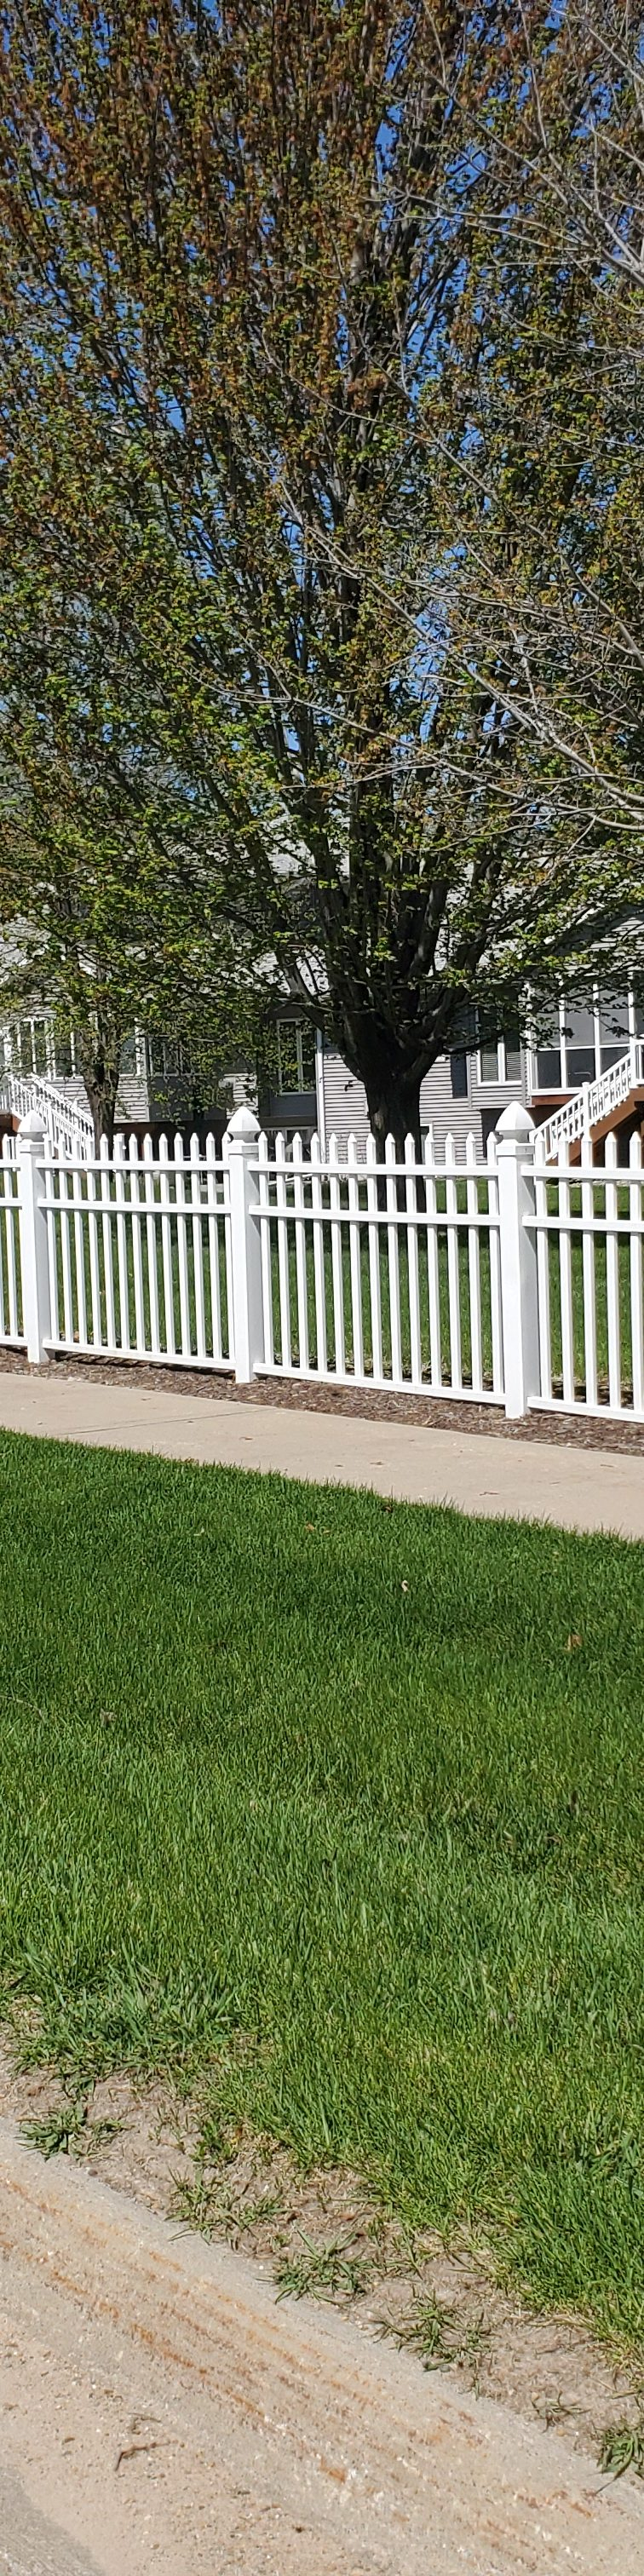 American Fence Company of Iowa City - 4' White Vinyl Picket Fence